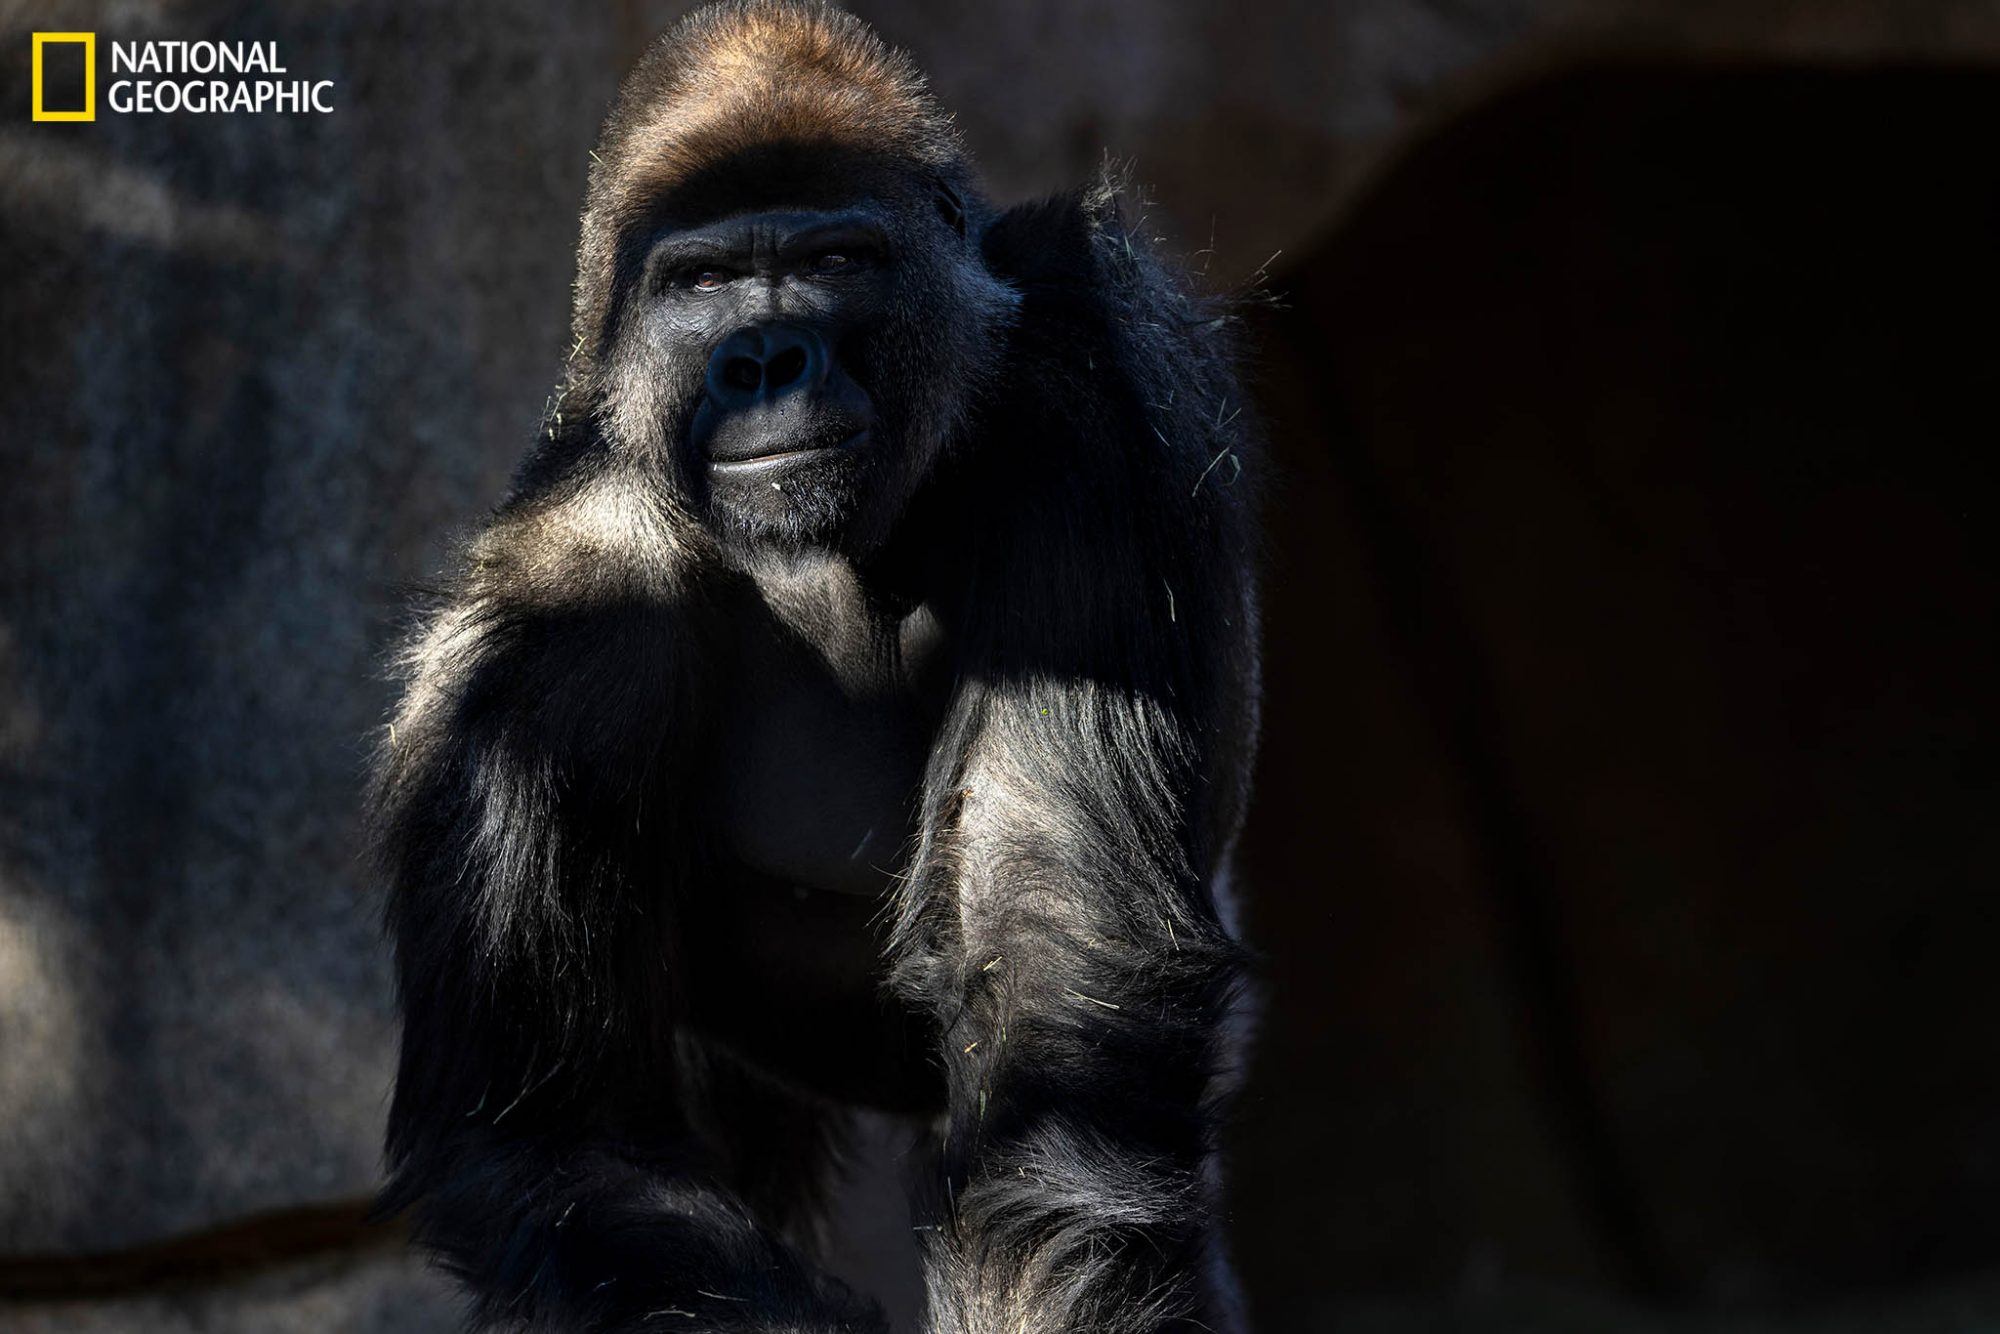 Frank, a 12-year-old gorilla at the San Diego Zoo Safari Park, is pictured after recovering from the coronavirus. After his troop of eight western lowland gorillas got sick in January, zoo staff received experimental COVID-19 vaccines from veterinary pharmaceutical company Zoetis to give to other great apes in their care, including bonobos and orangutans.